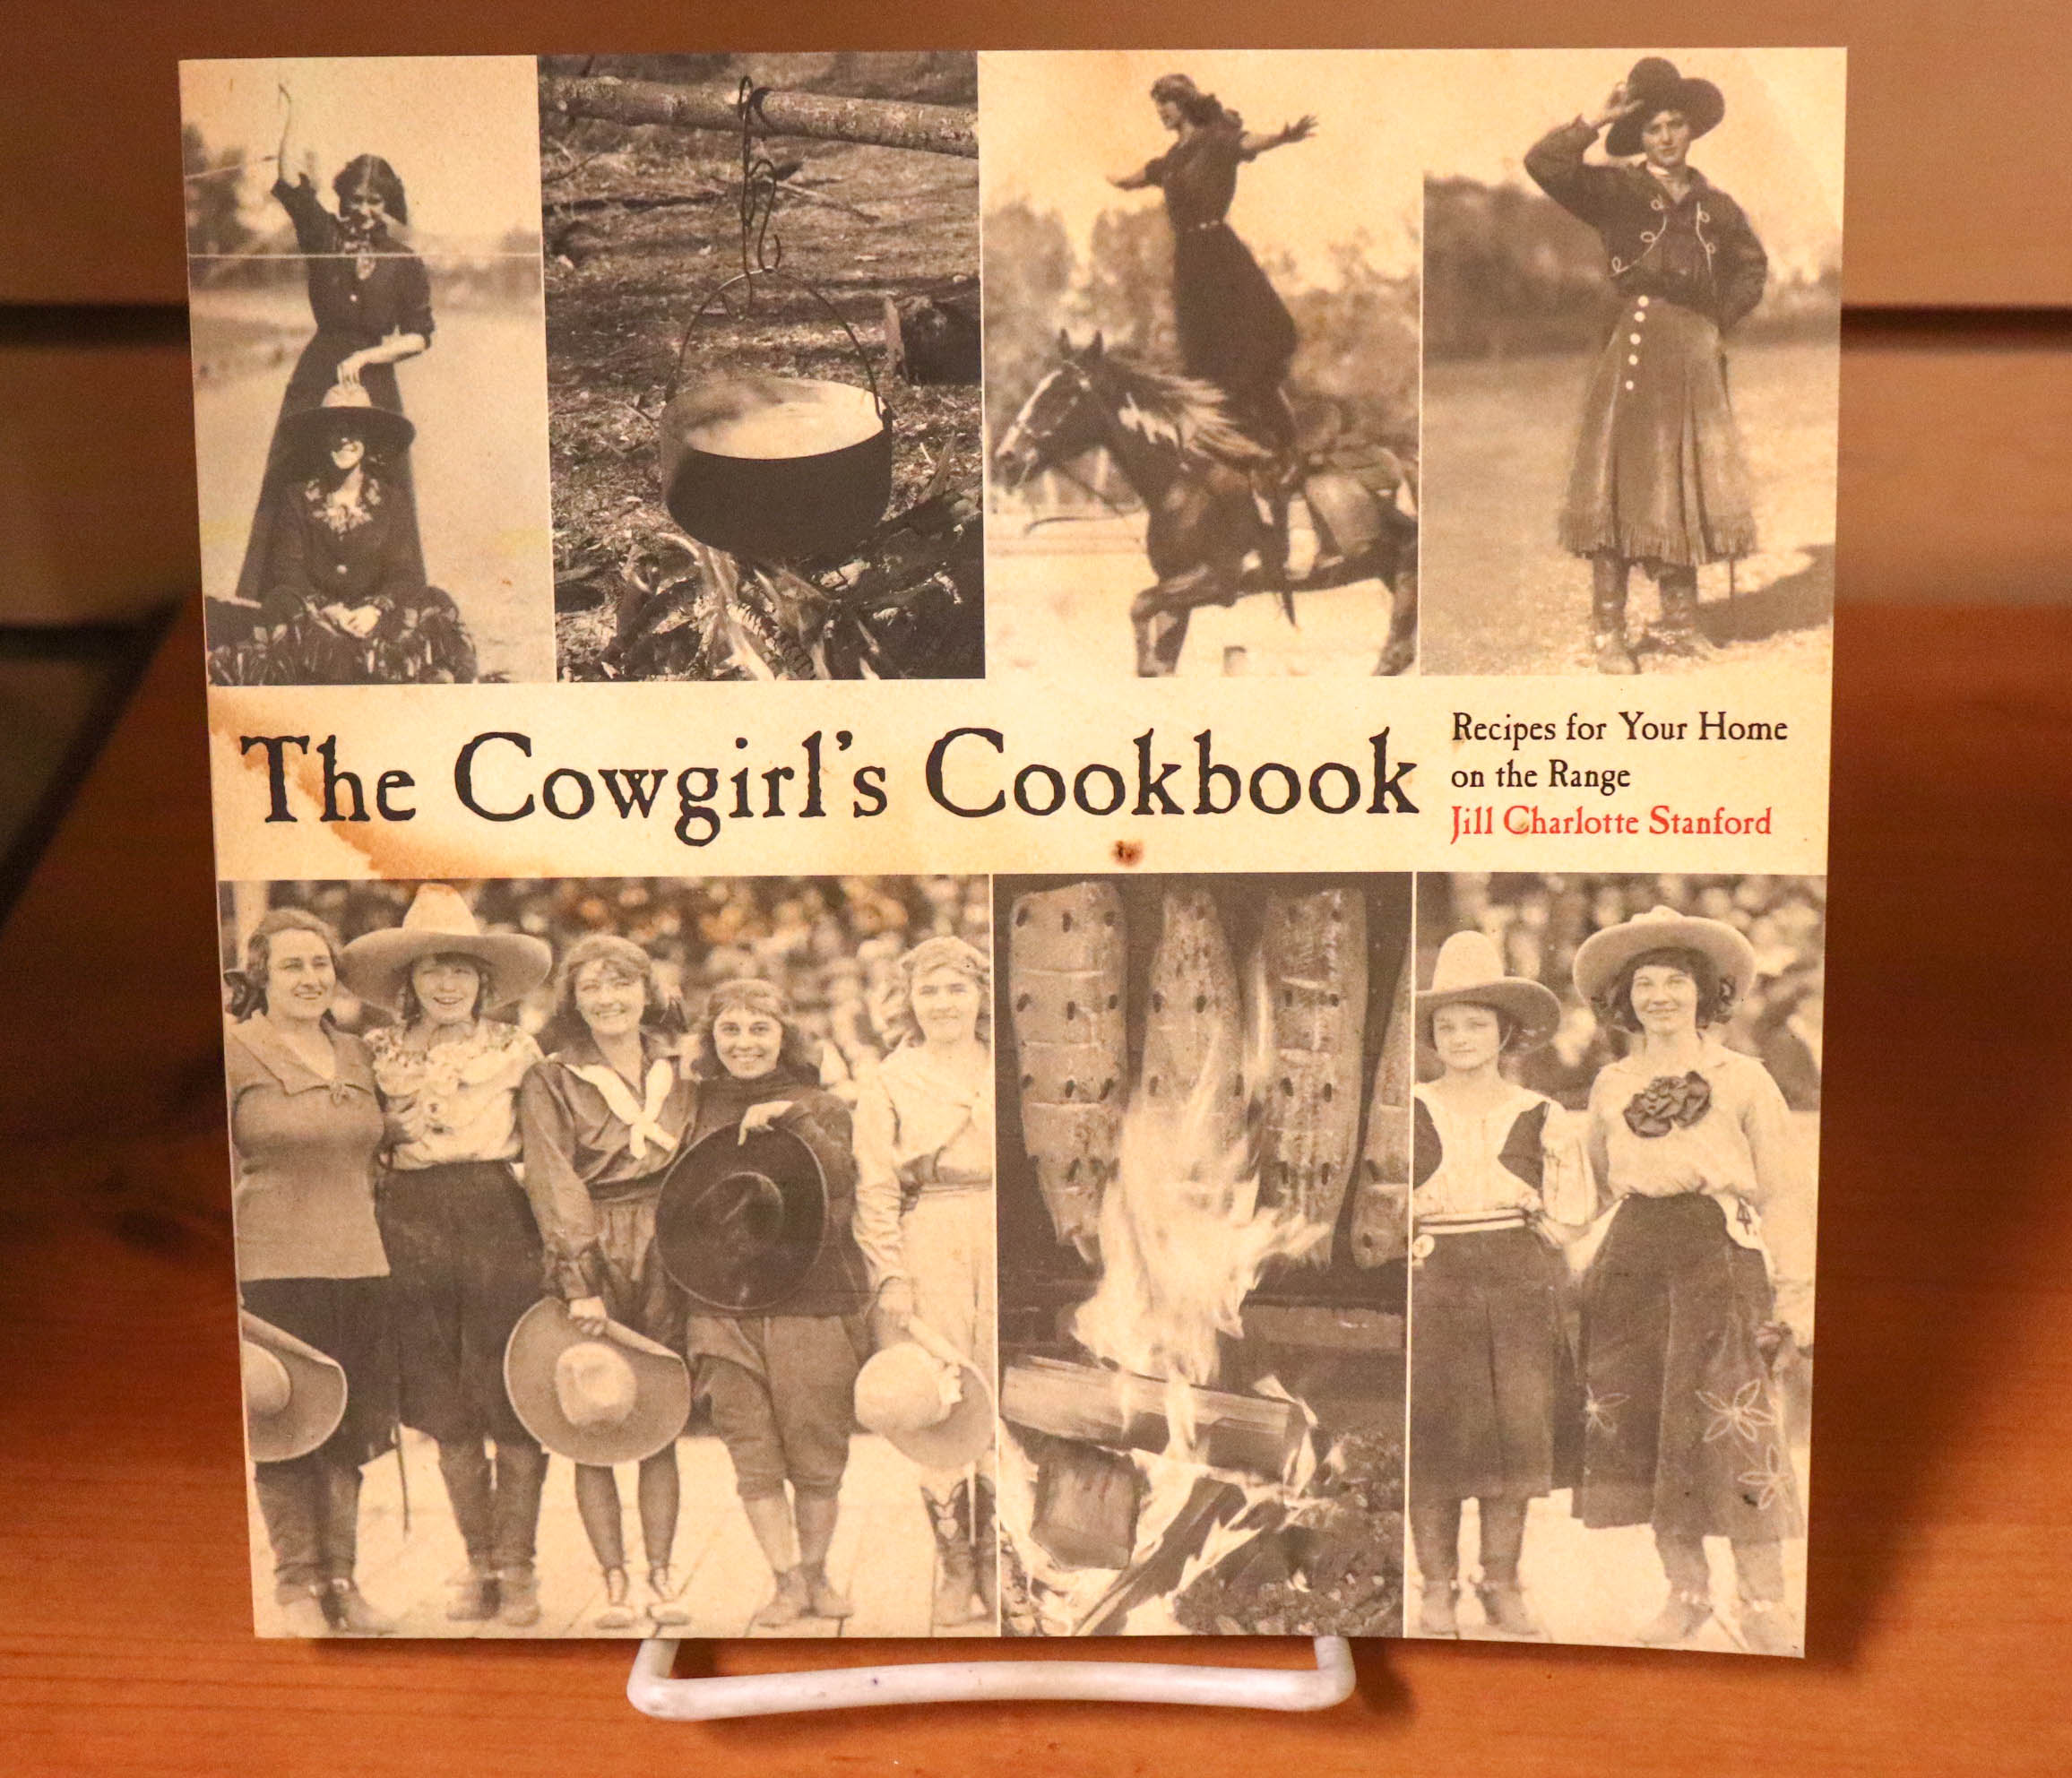 The Cowgirl's Cookbook by Jill Charlotte Stanford